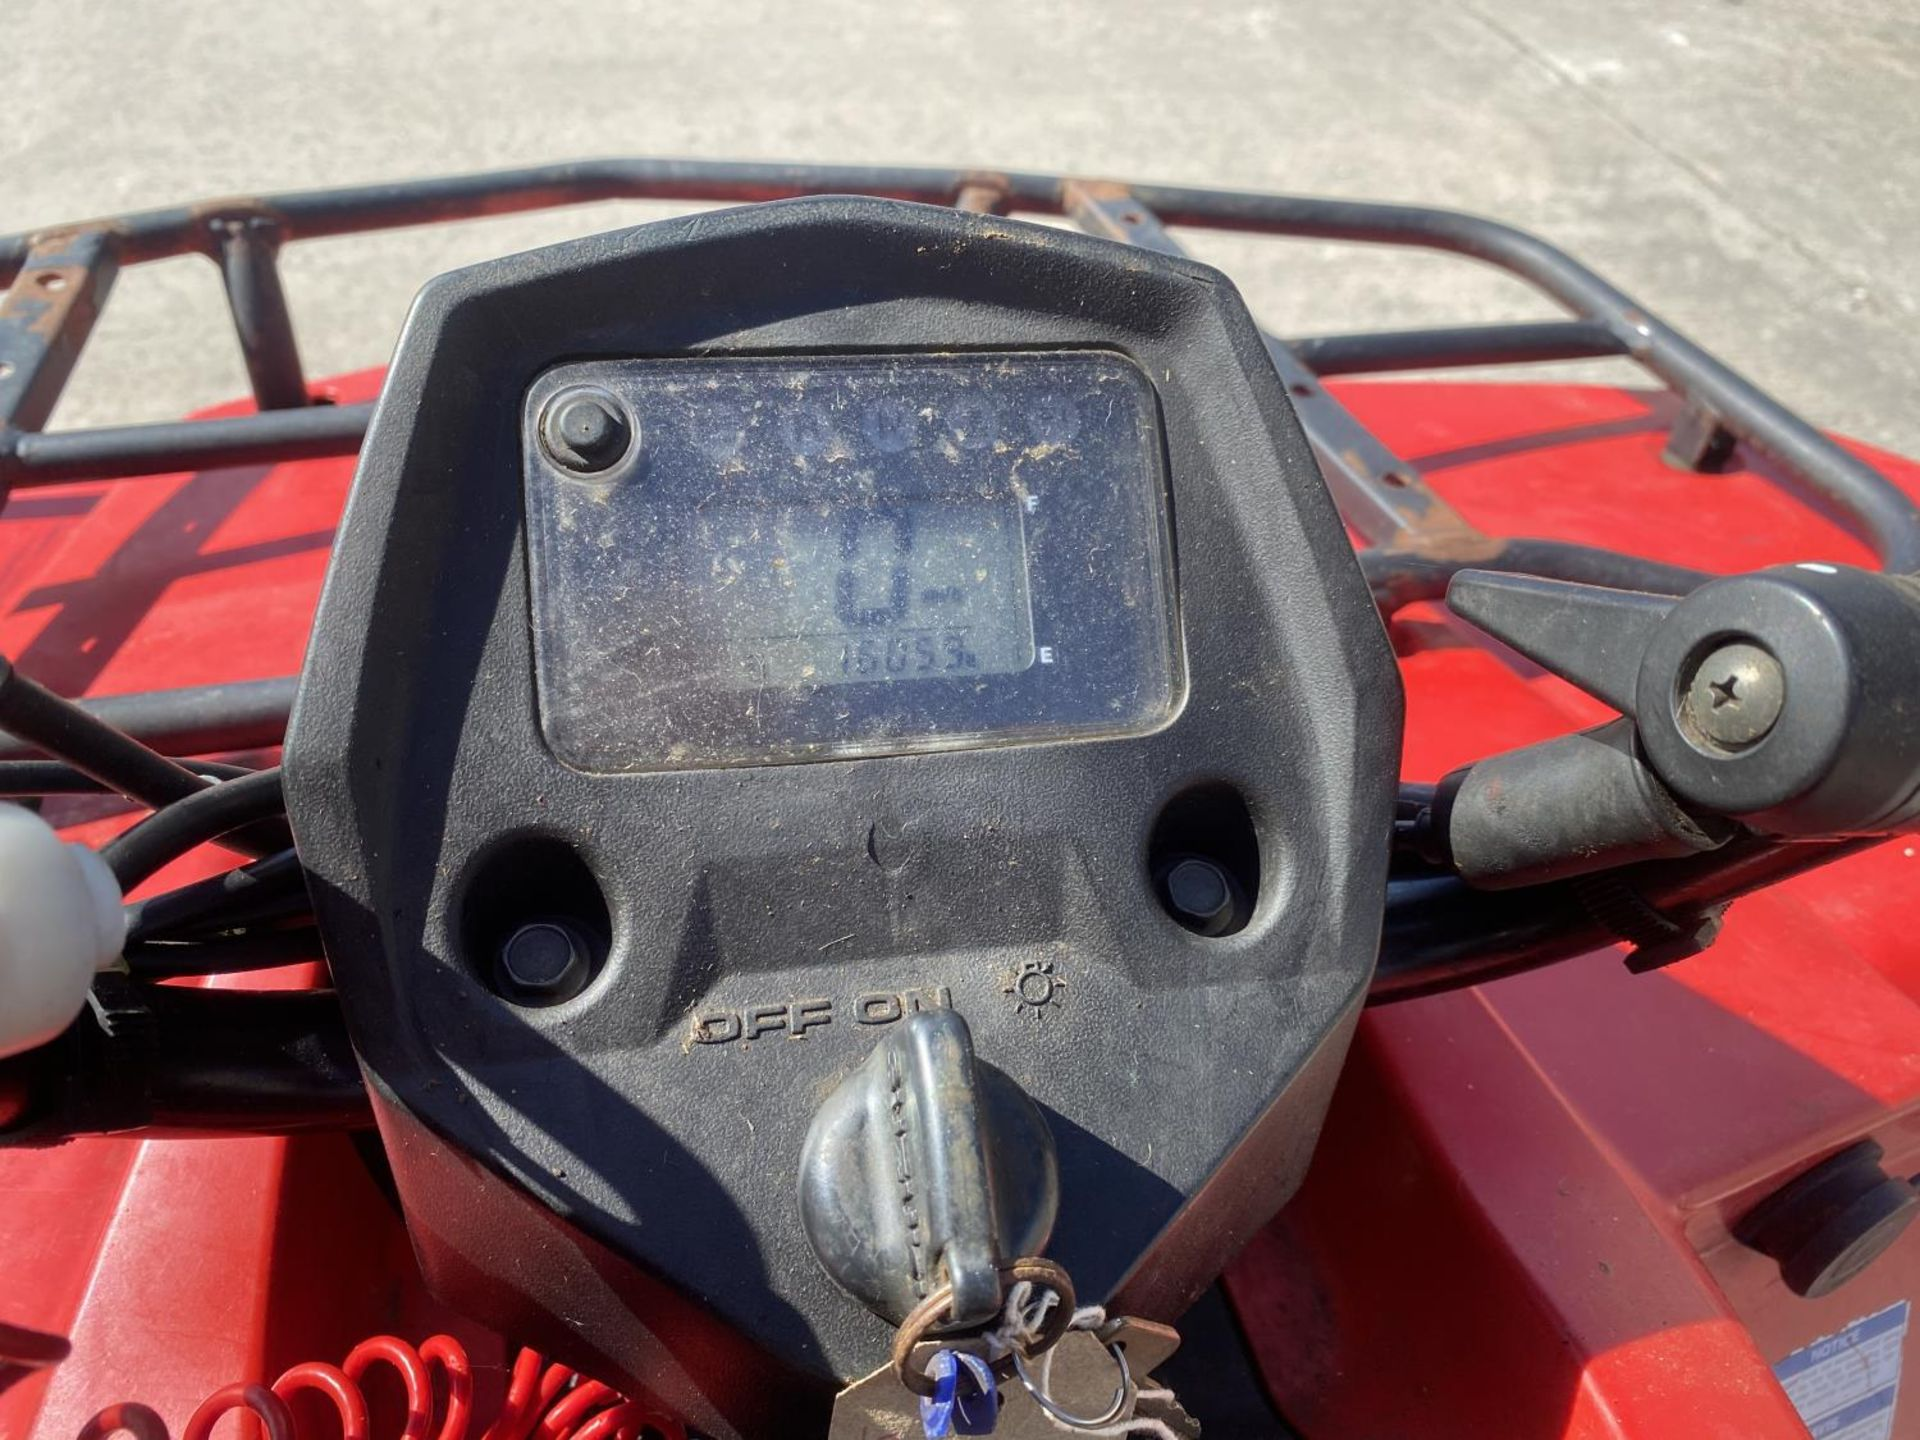 A 2013 SUZUKI KING QUAD, 400 CC AUTOMATIC - SEE VIDEO OF VEHICLE STARTING AND RUNNING - NO VAT - Image 9 of 12